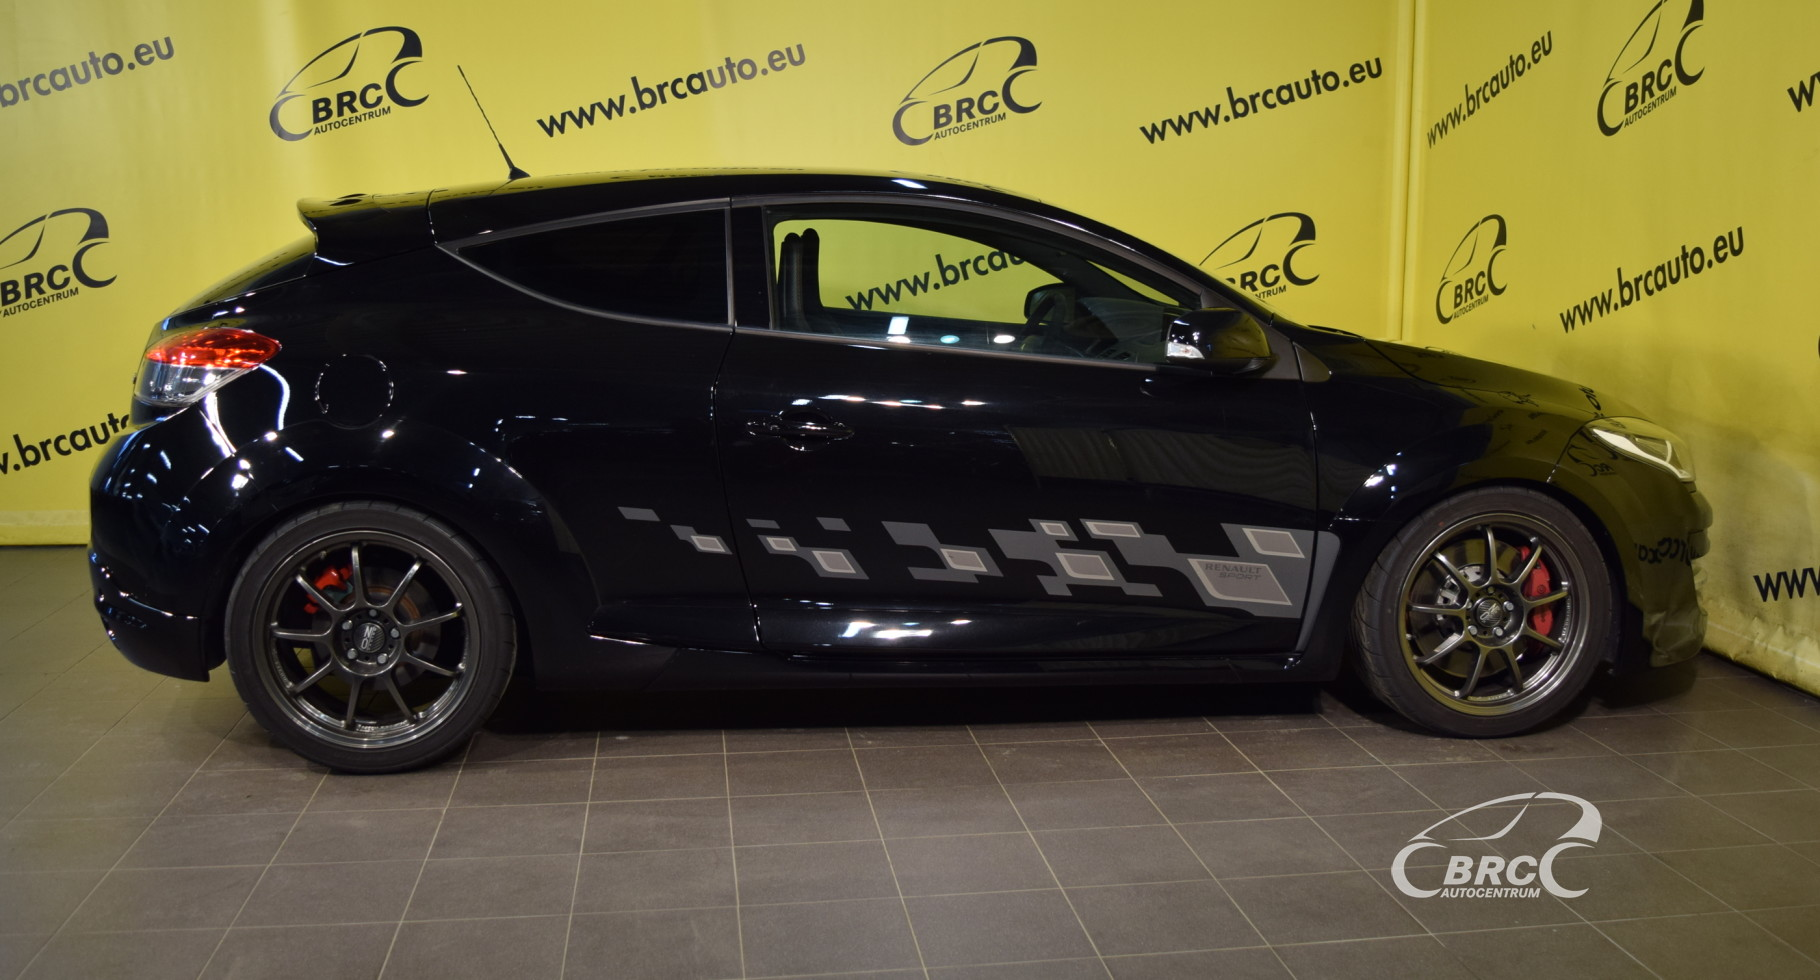 Renault Megane RS Trophy Ringtoy KW, Kirfel, Endless